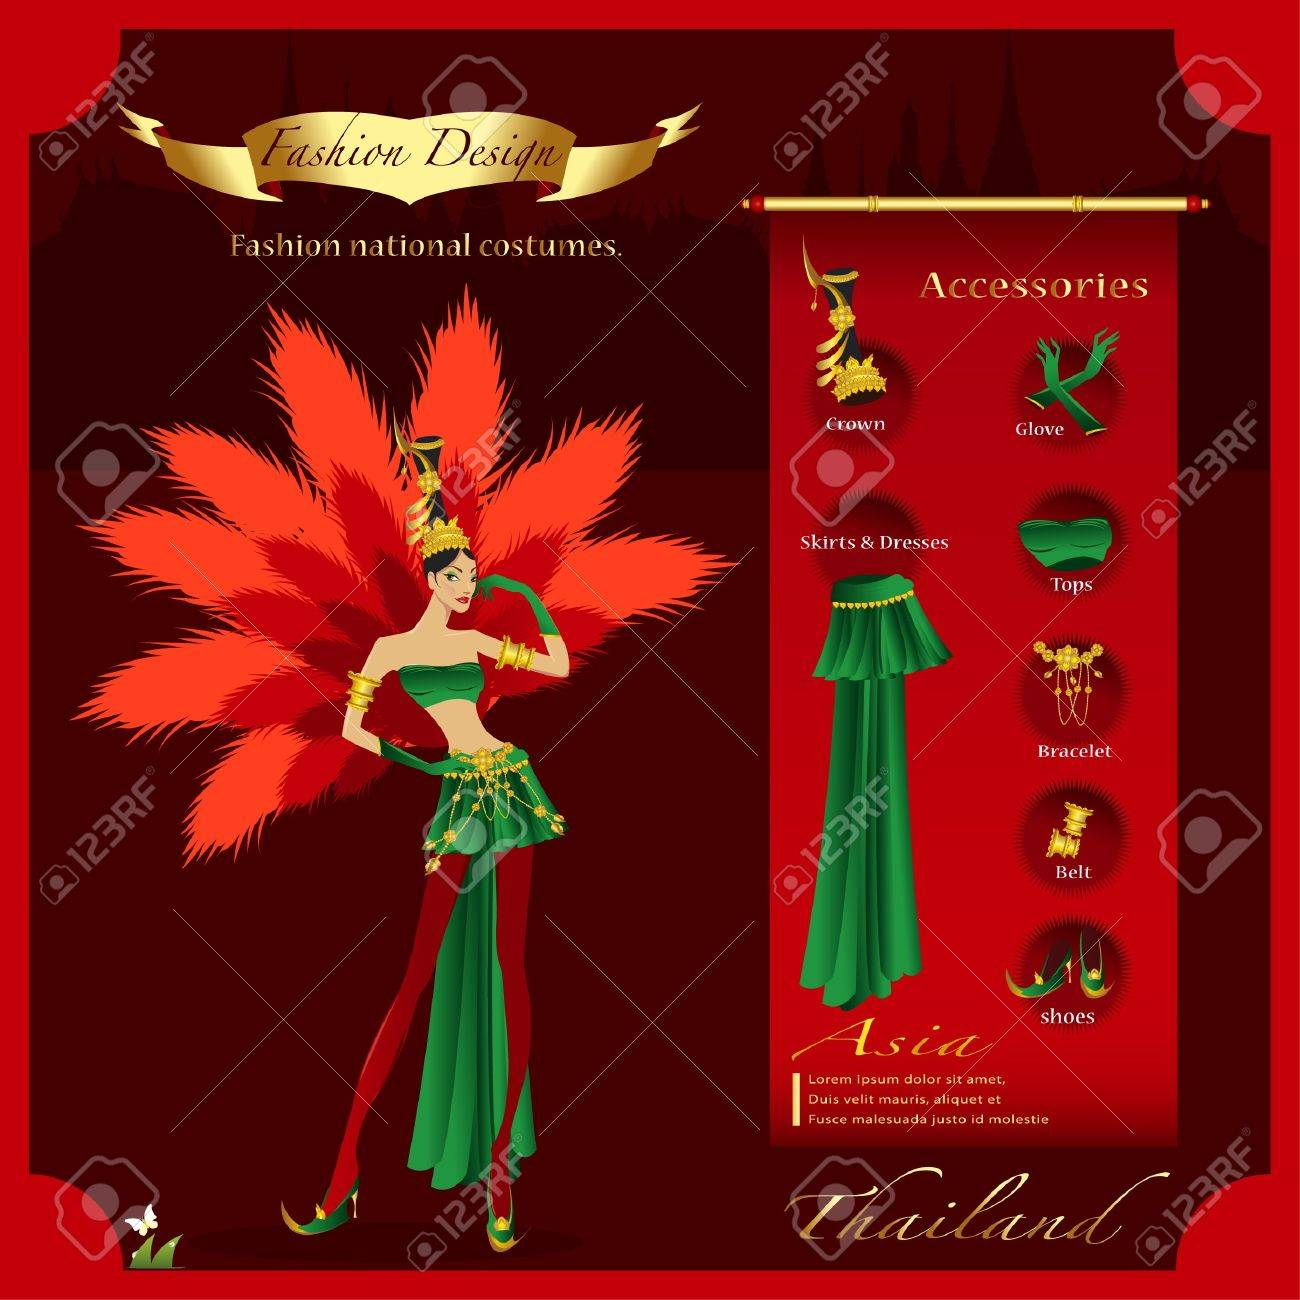 Fashion Design infographic The Asian nation fancy dress Stock Vector - 21446950